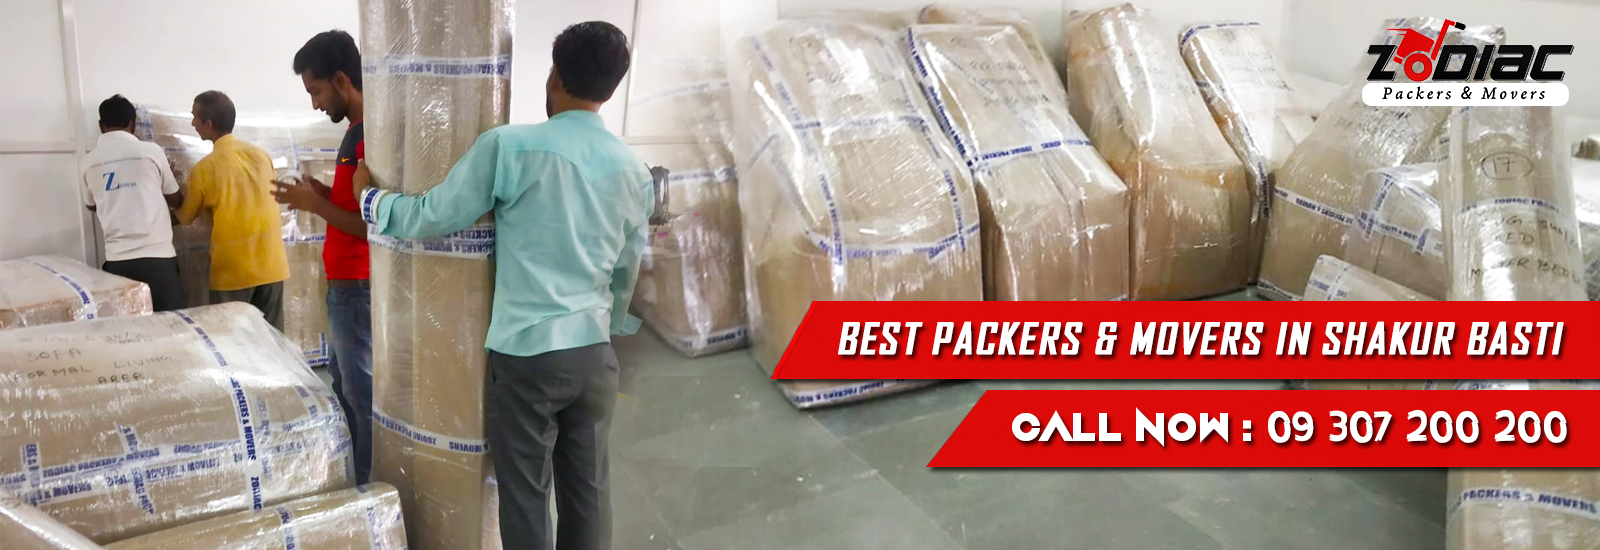 Packers and Movers in Shakur Basti